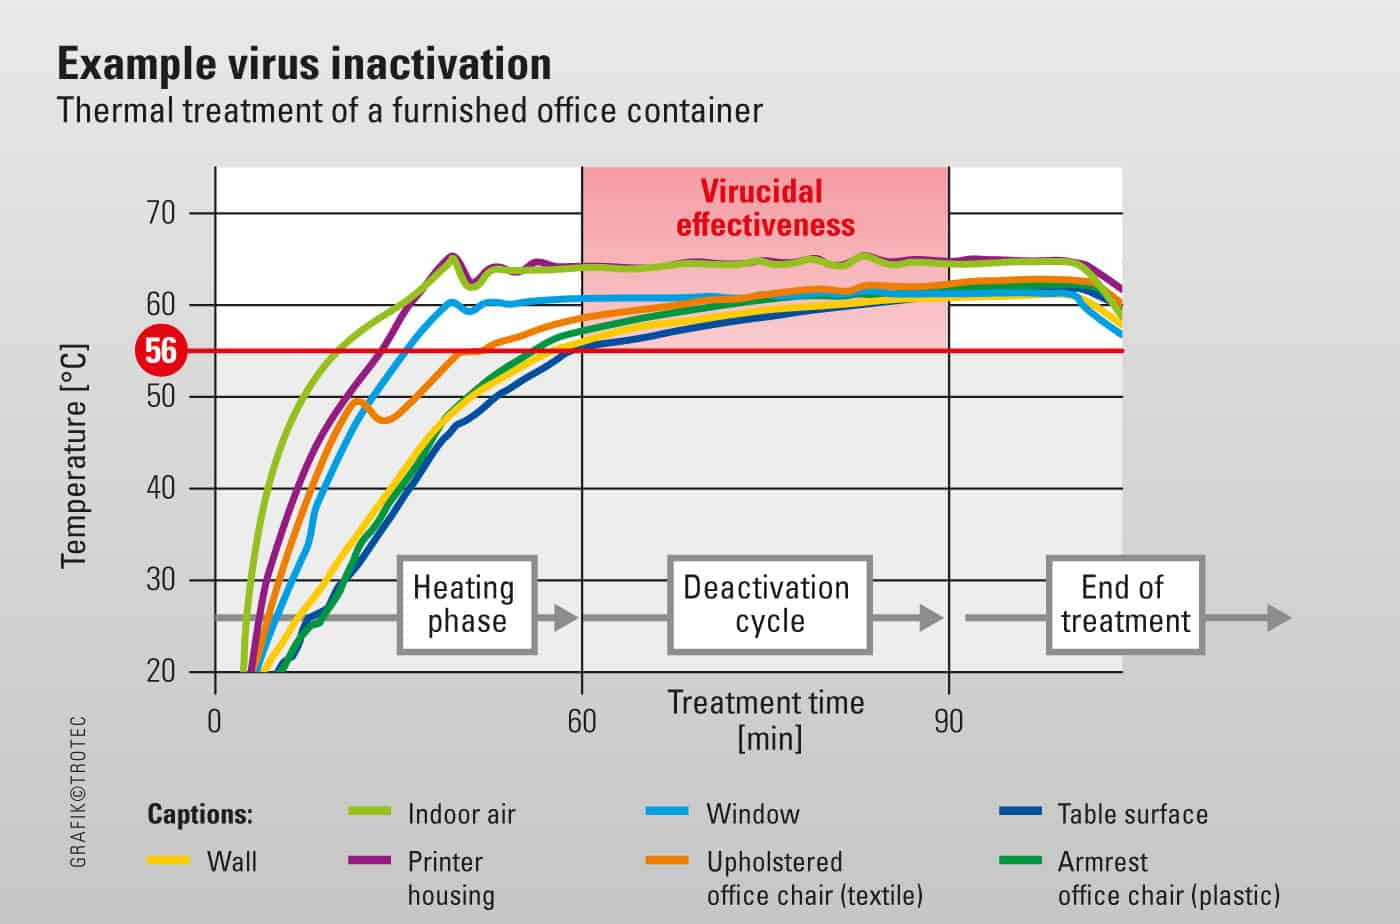 Example of virus inactivation process with tes 200